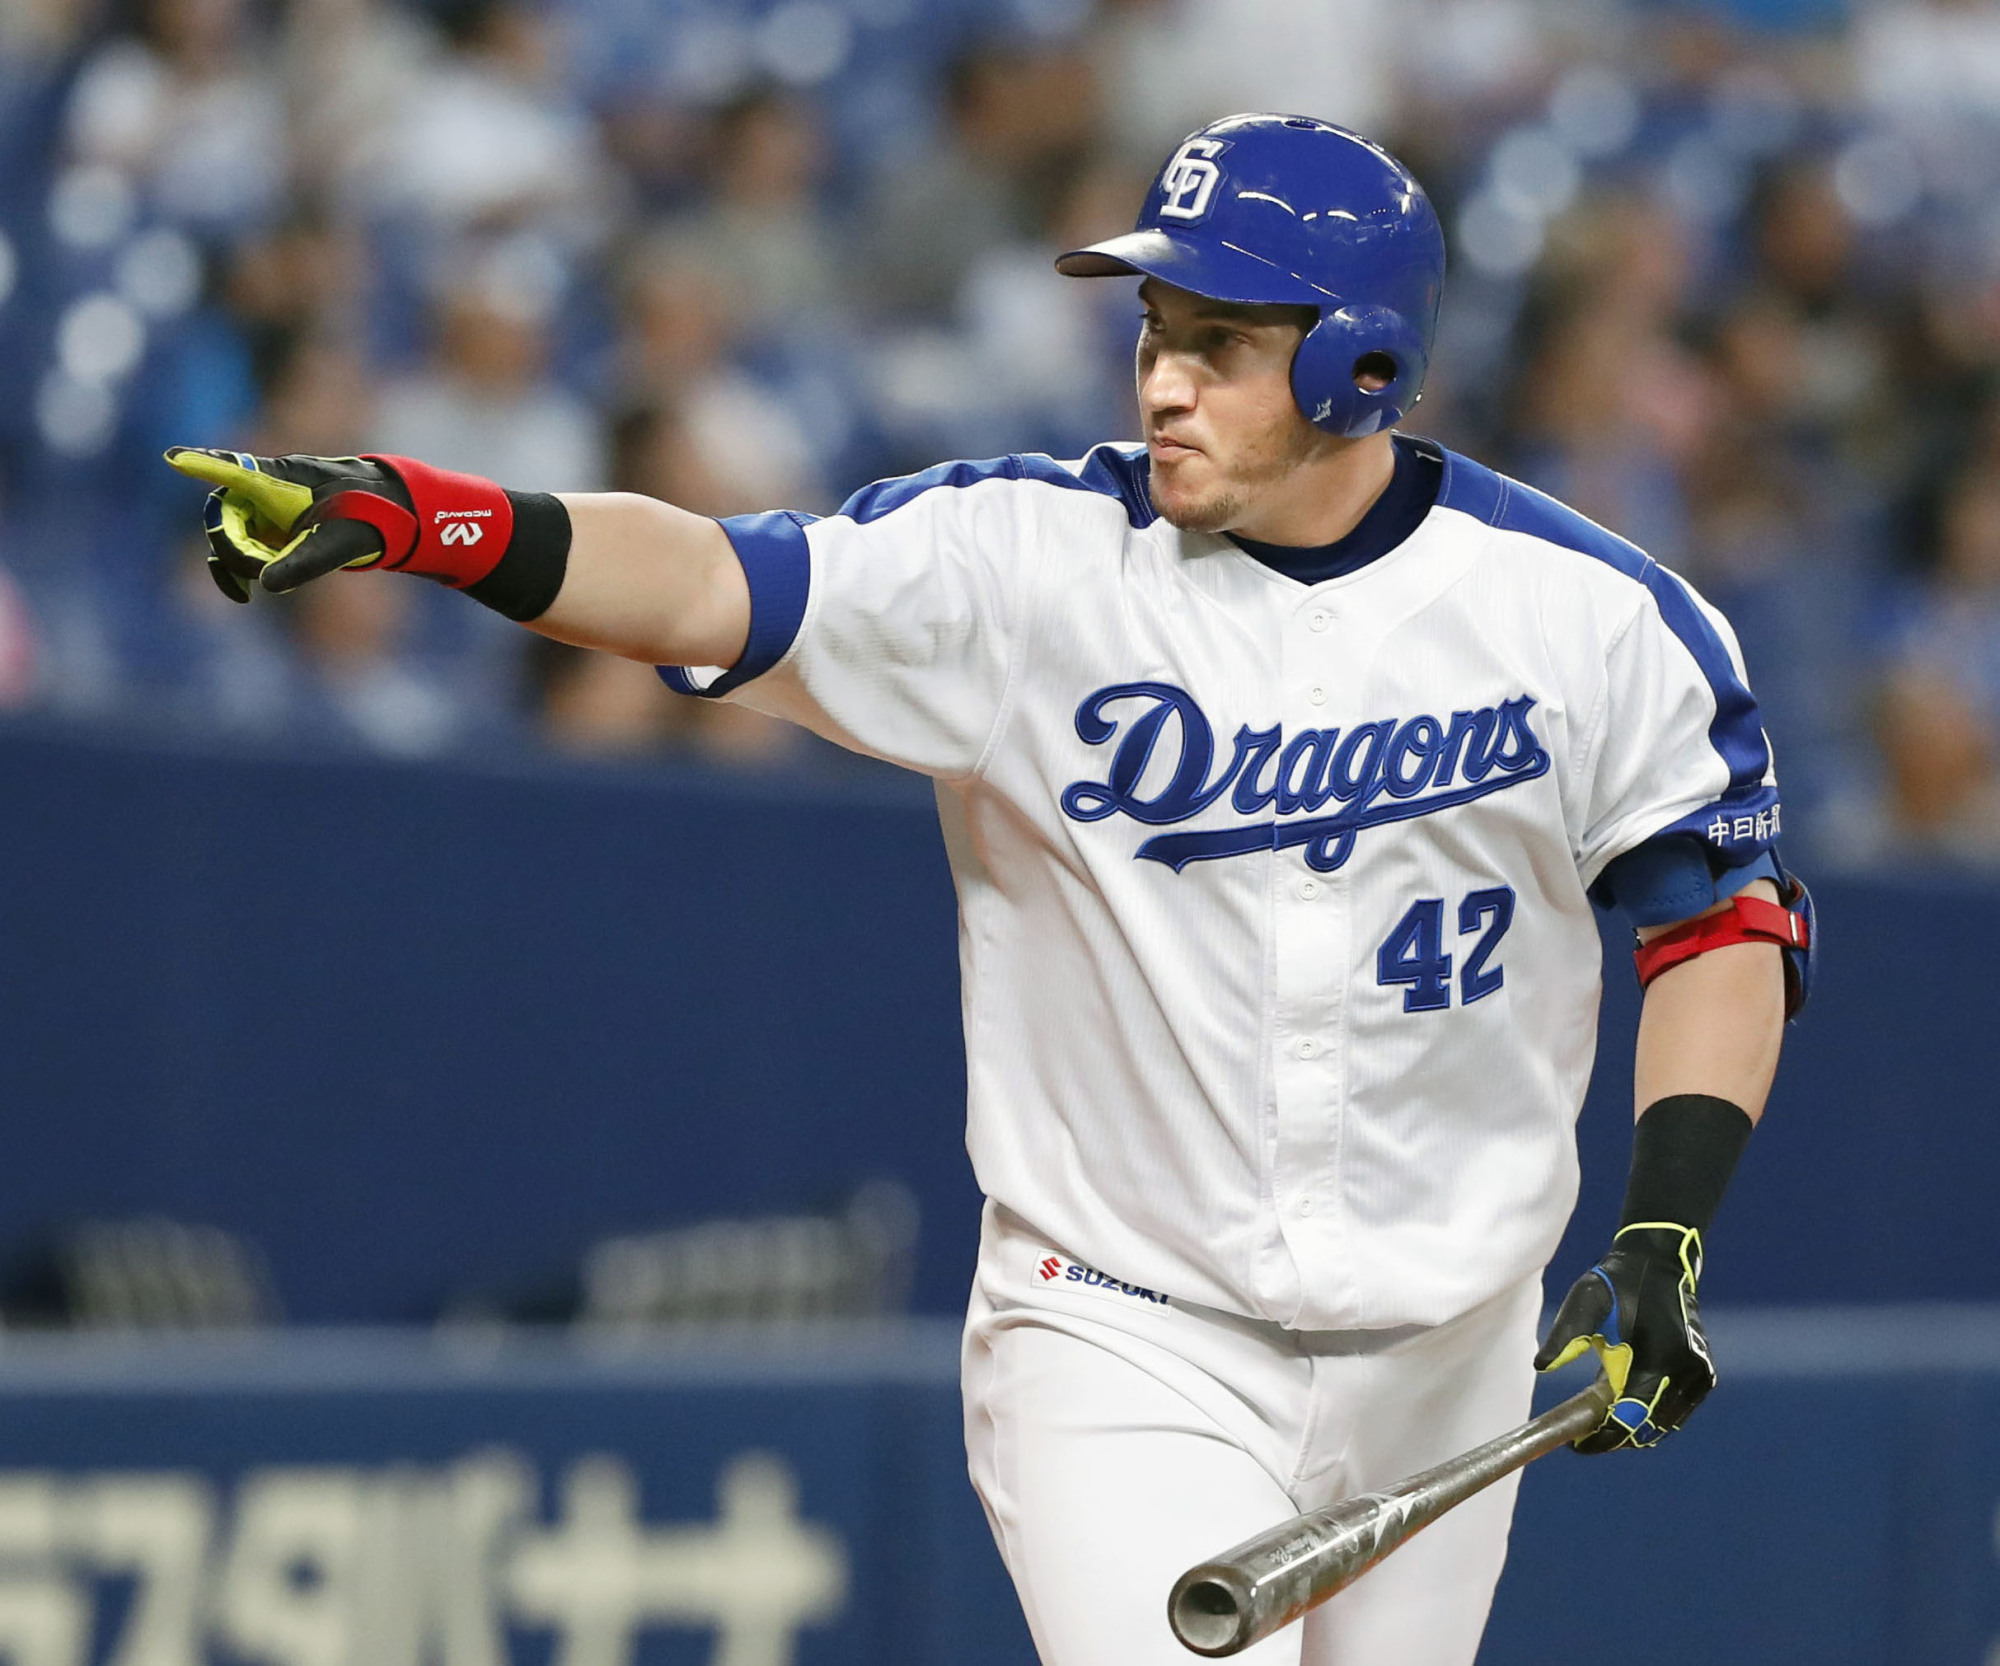 Alex Guerrero led the Central League with 35 home runs last season, his first in Japan. Guerrero will suit up for the Giants next year after spending 2017 with the Dragons. | KYODO